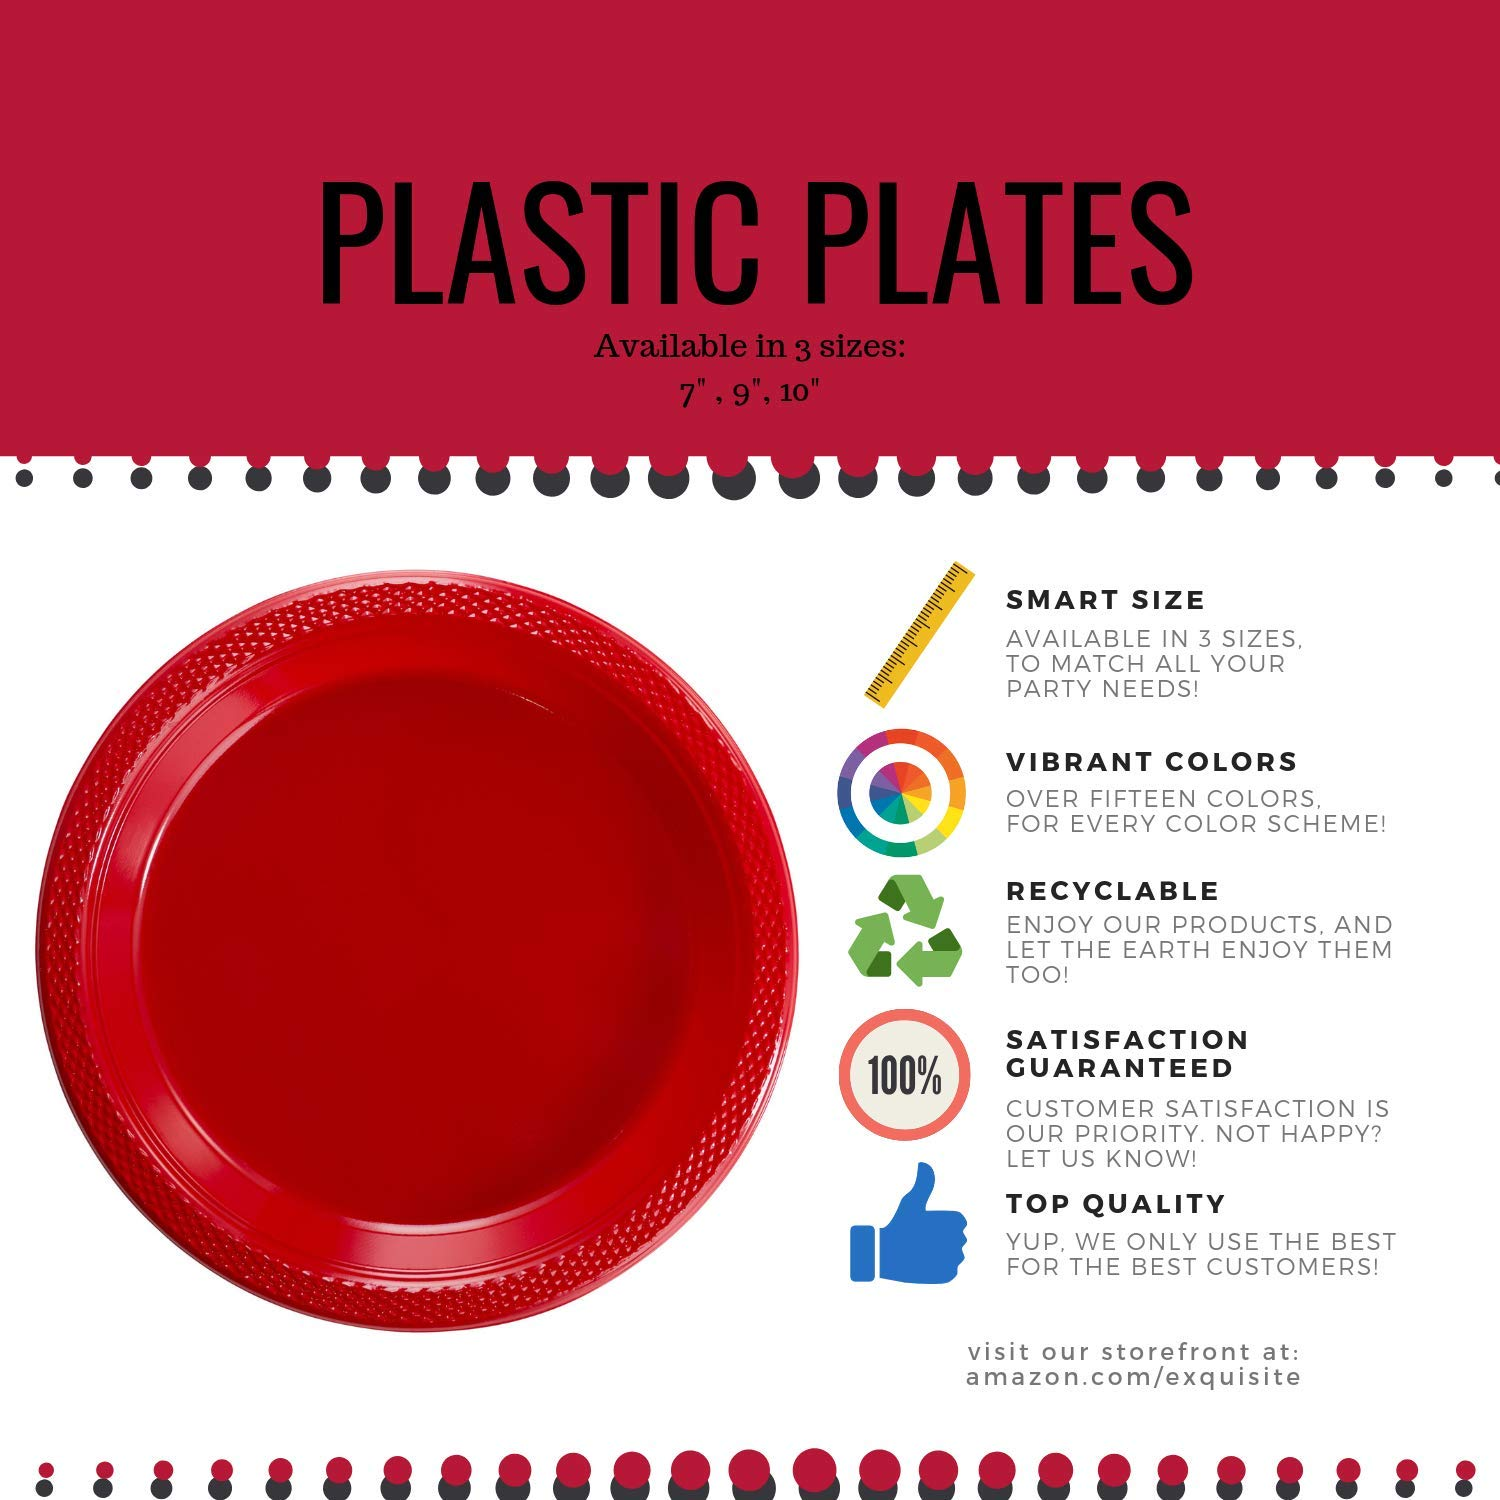 Exquisite Plastic Dessert/Salad Plates - Solid Color Disposable Plates - 100 Count (10 Inch, Clear) by Exquisite